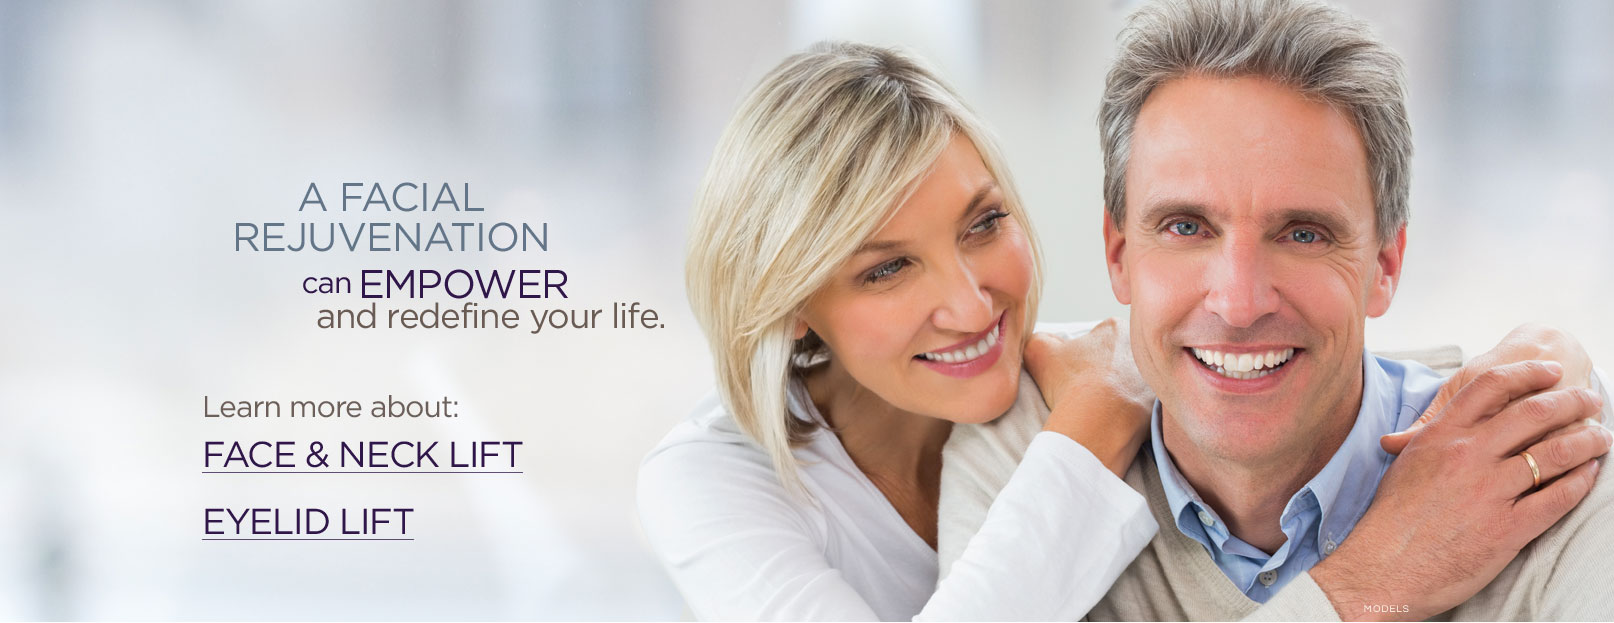 Toronto Facial Rejuvenation